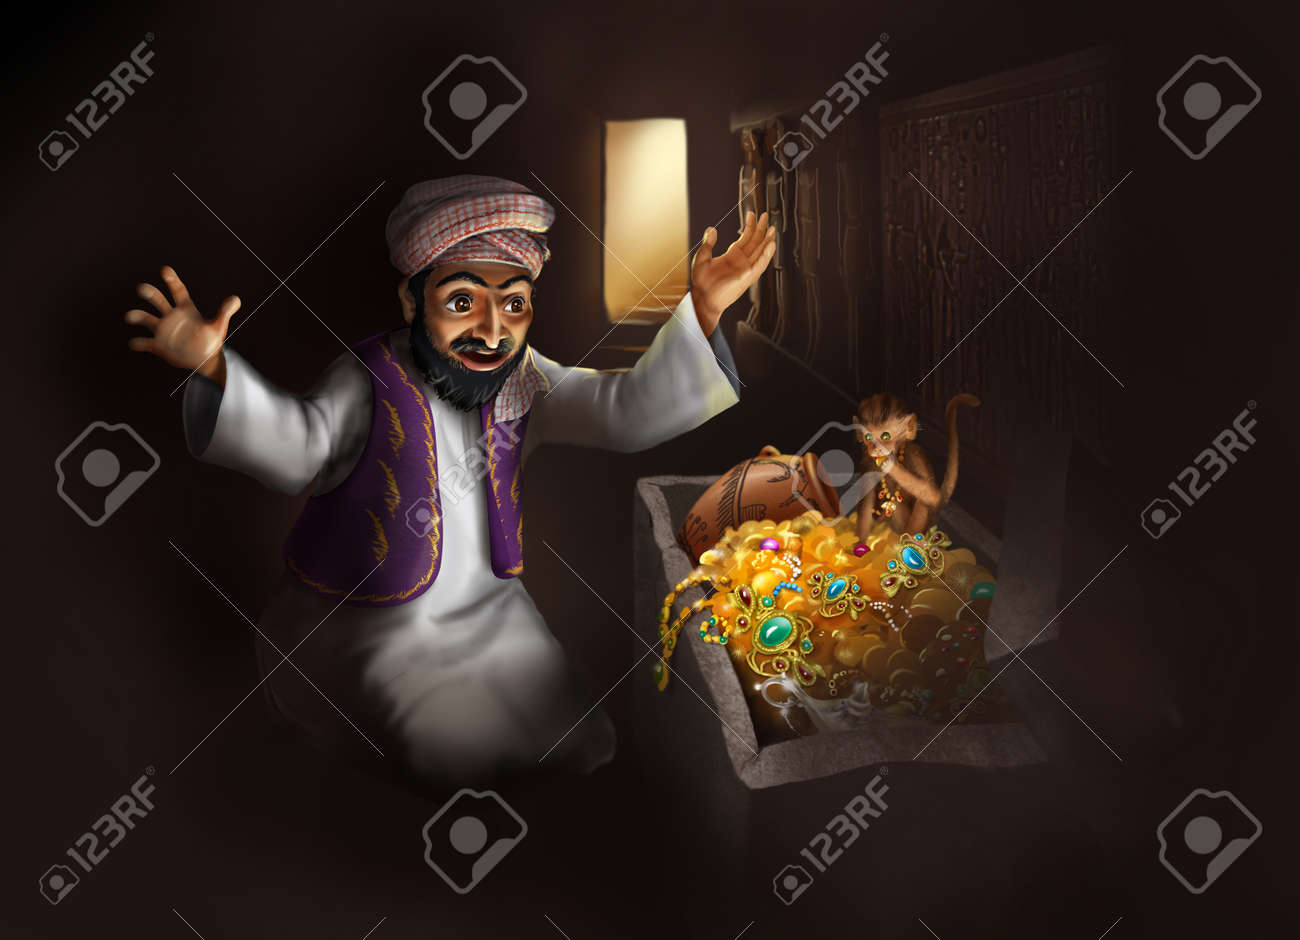 Treasure of Egypt - Arabic man in traditional clothing and monkey discovering treasure chest with gold artifacts - funny cartoon illustration - 28110104